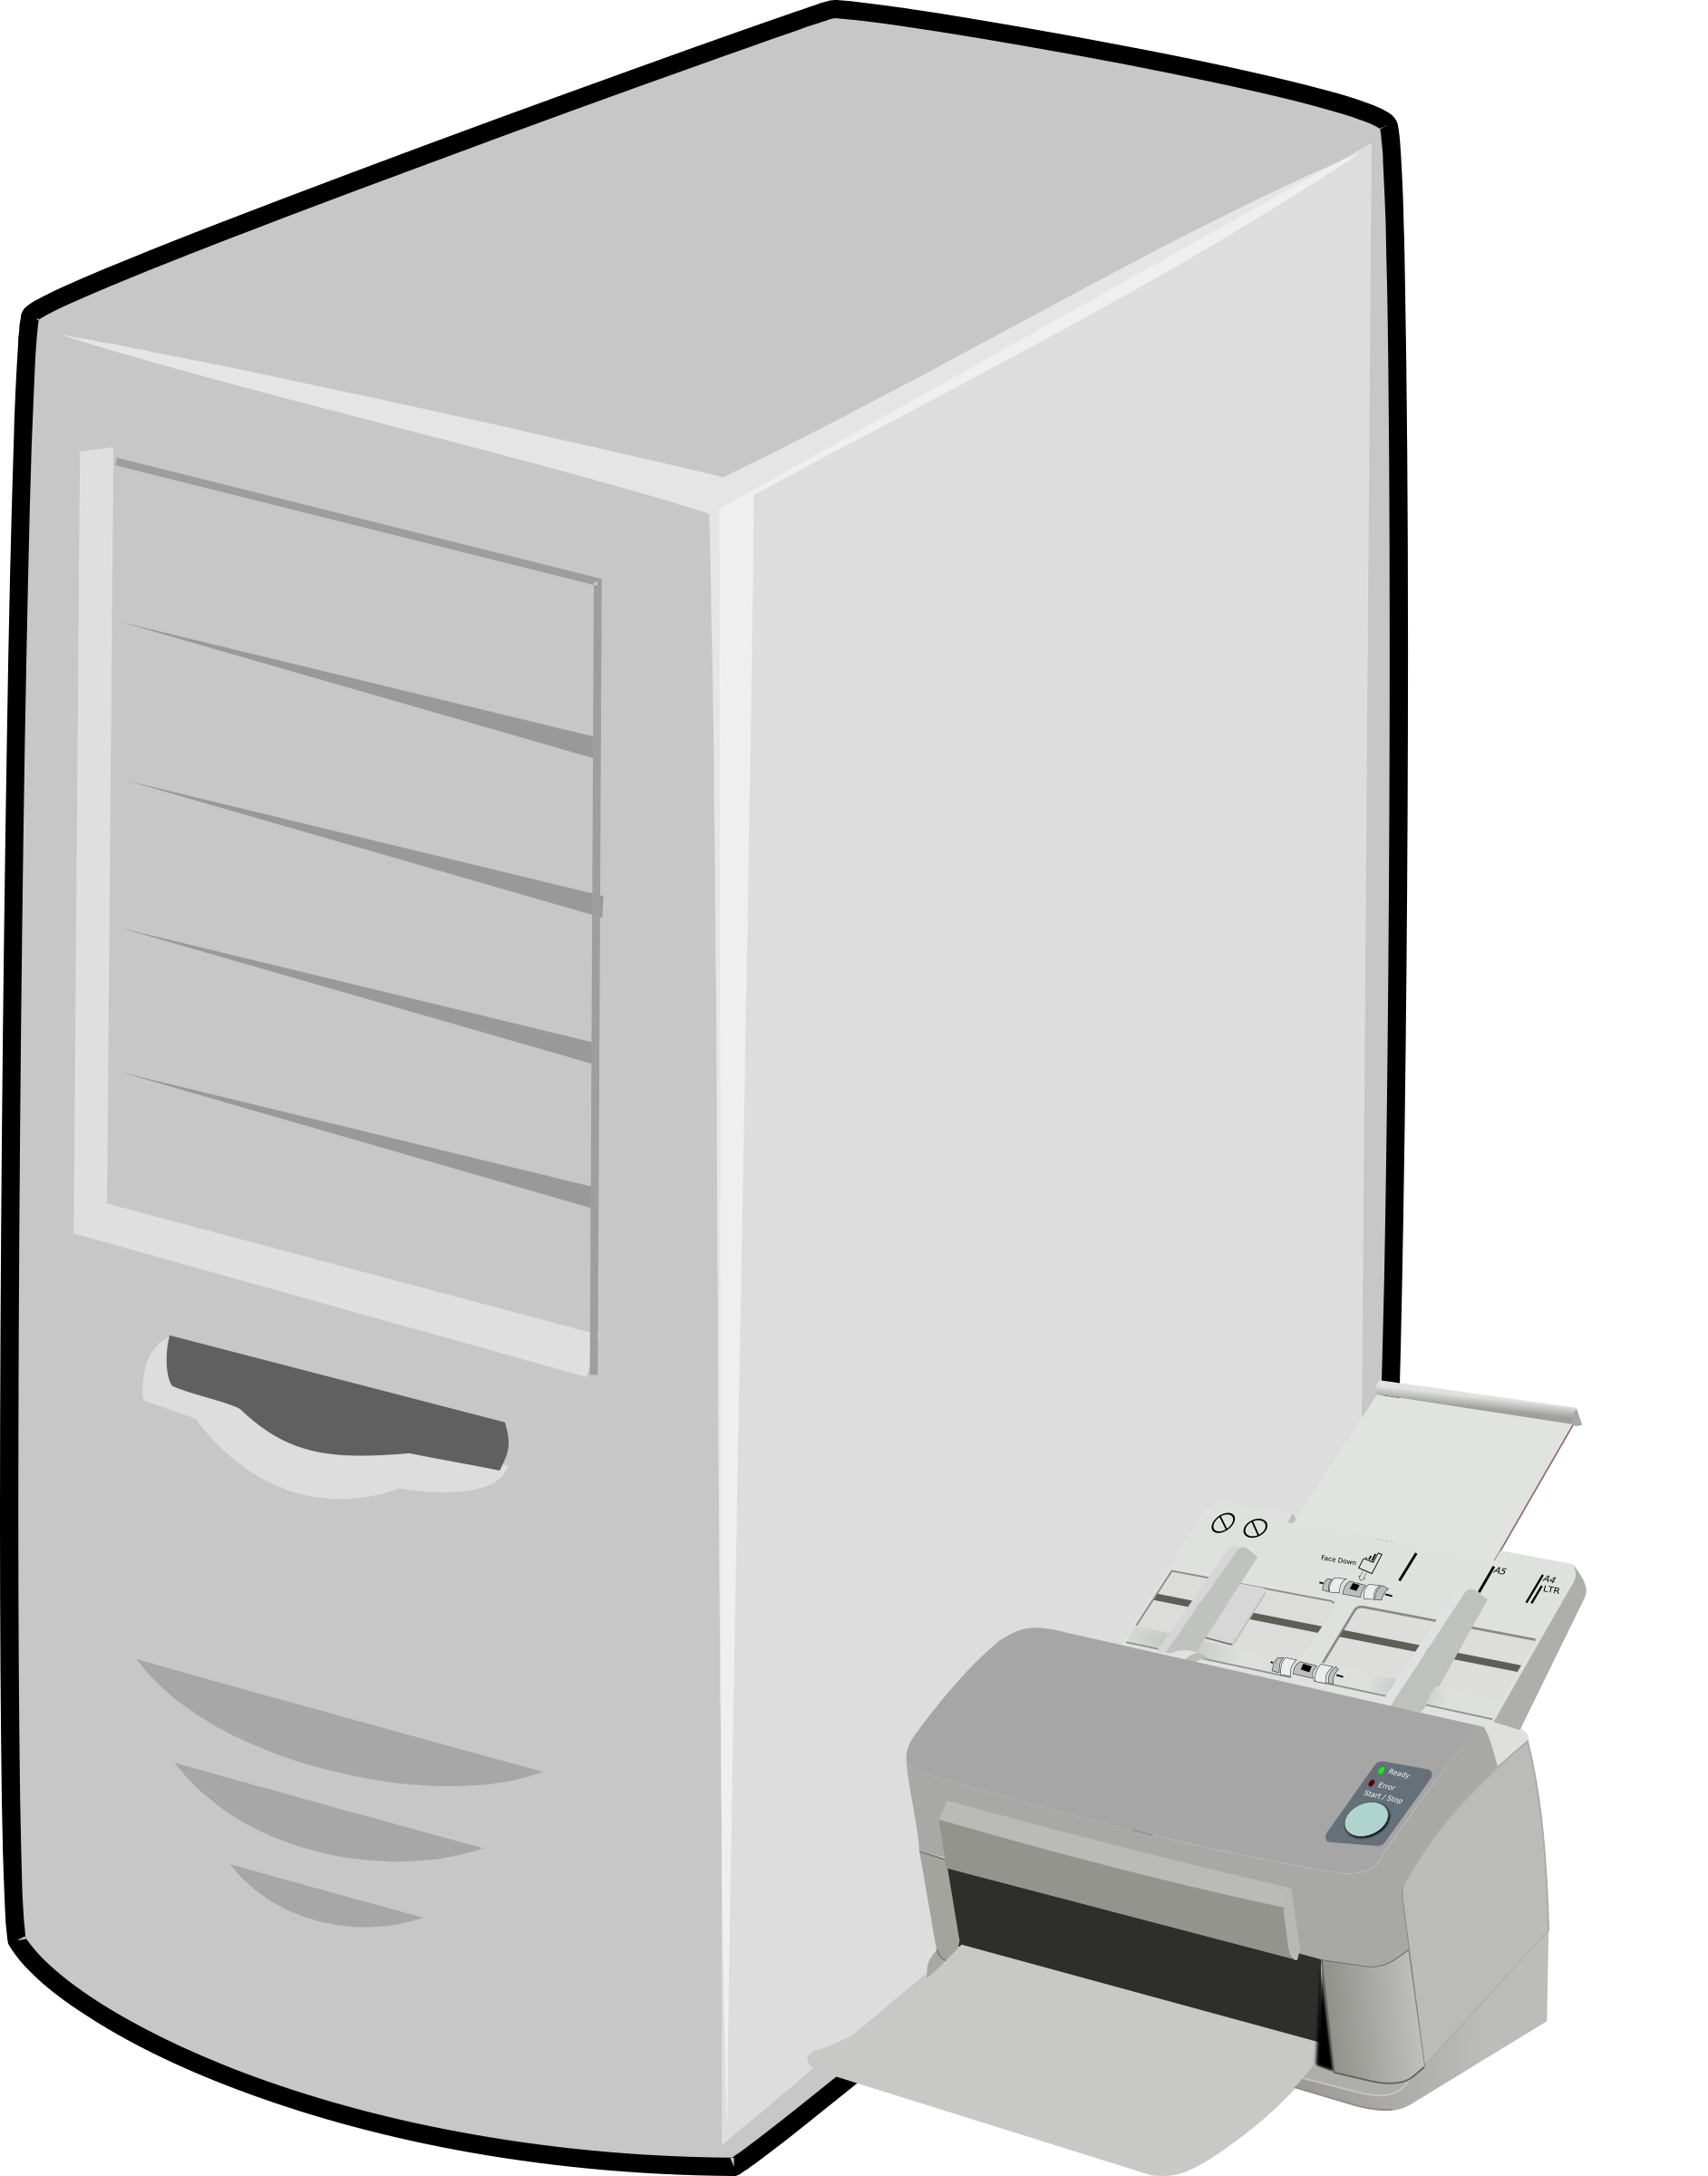 Fax Server by ujmoser